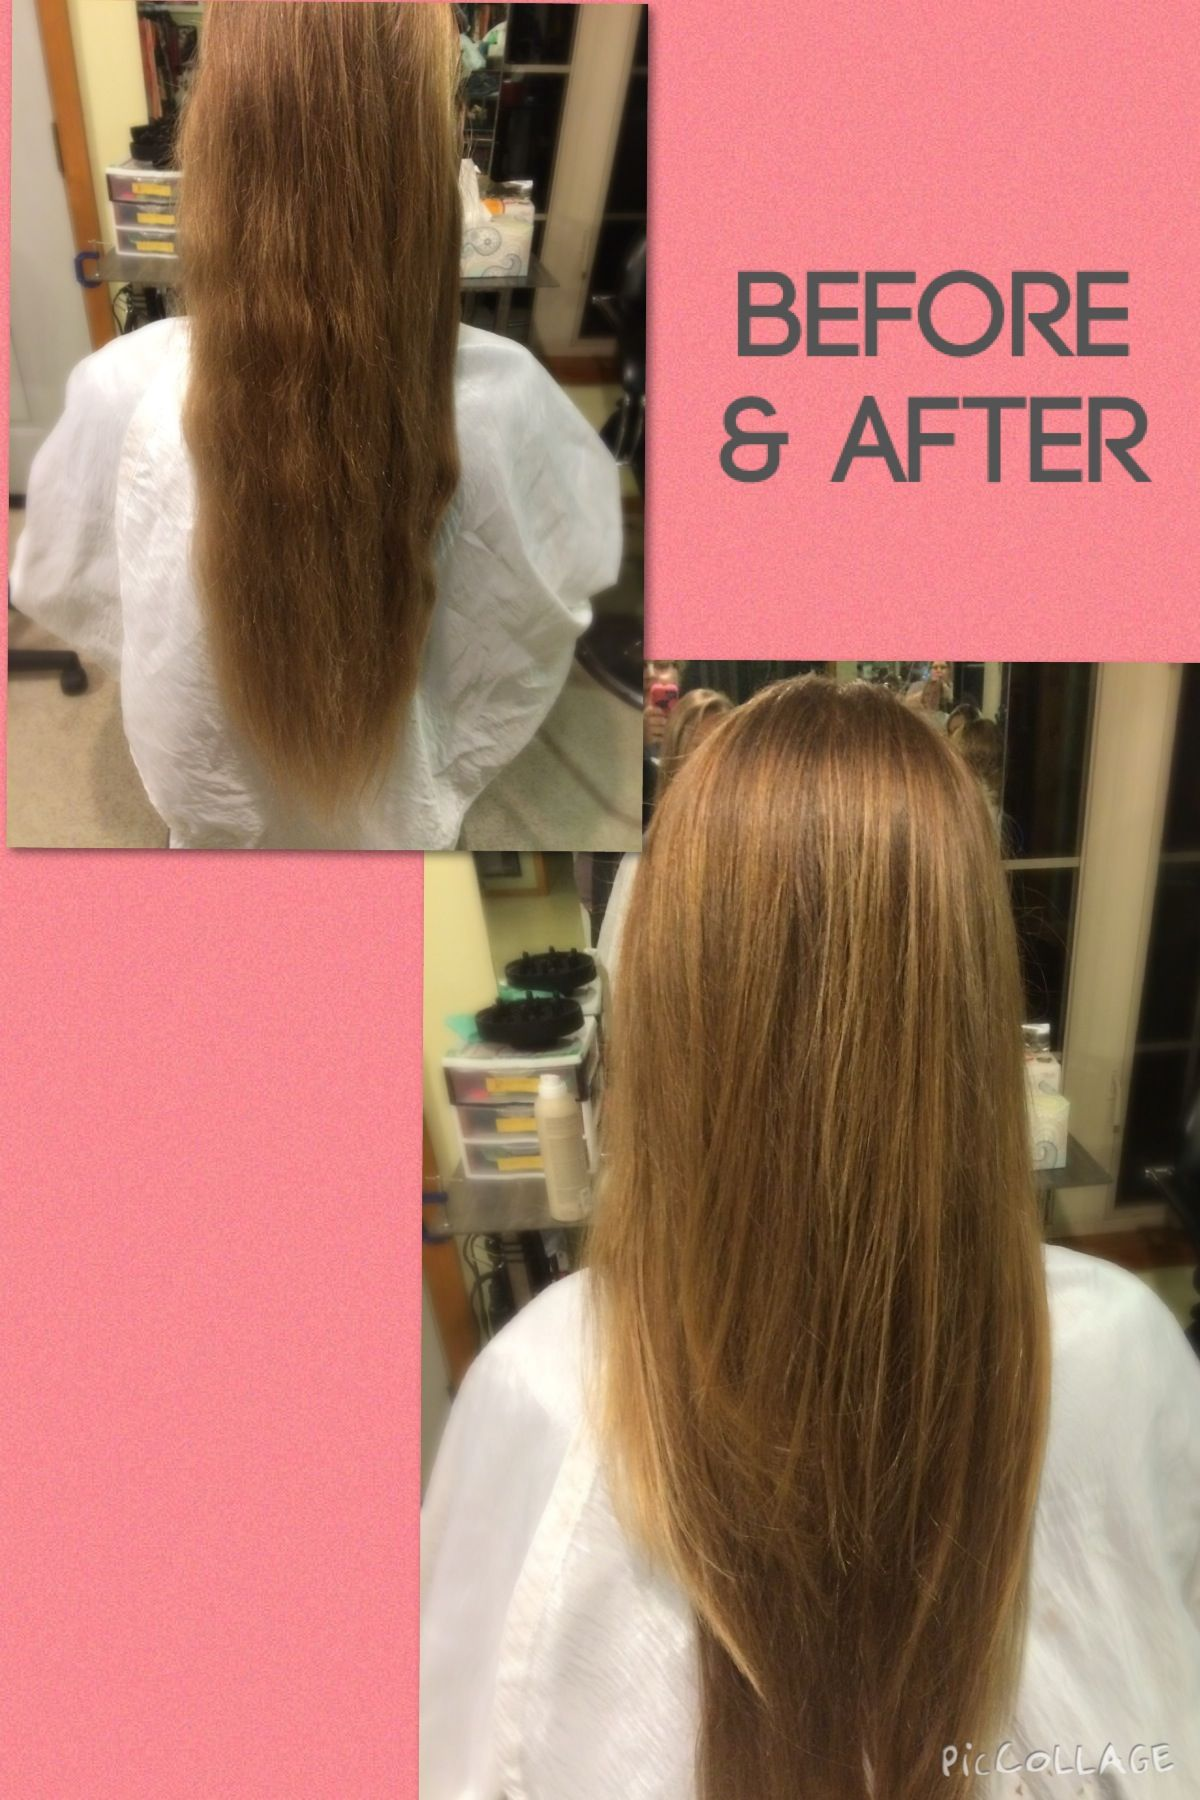 A simple haircut can Transform the looks of your hair from frizz to